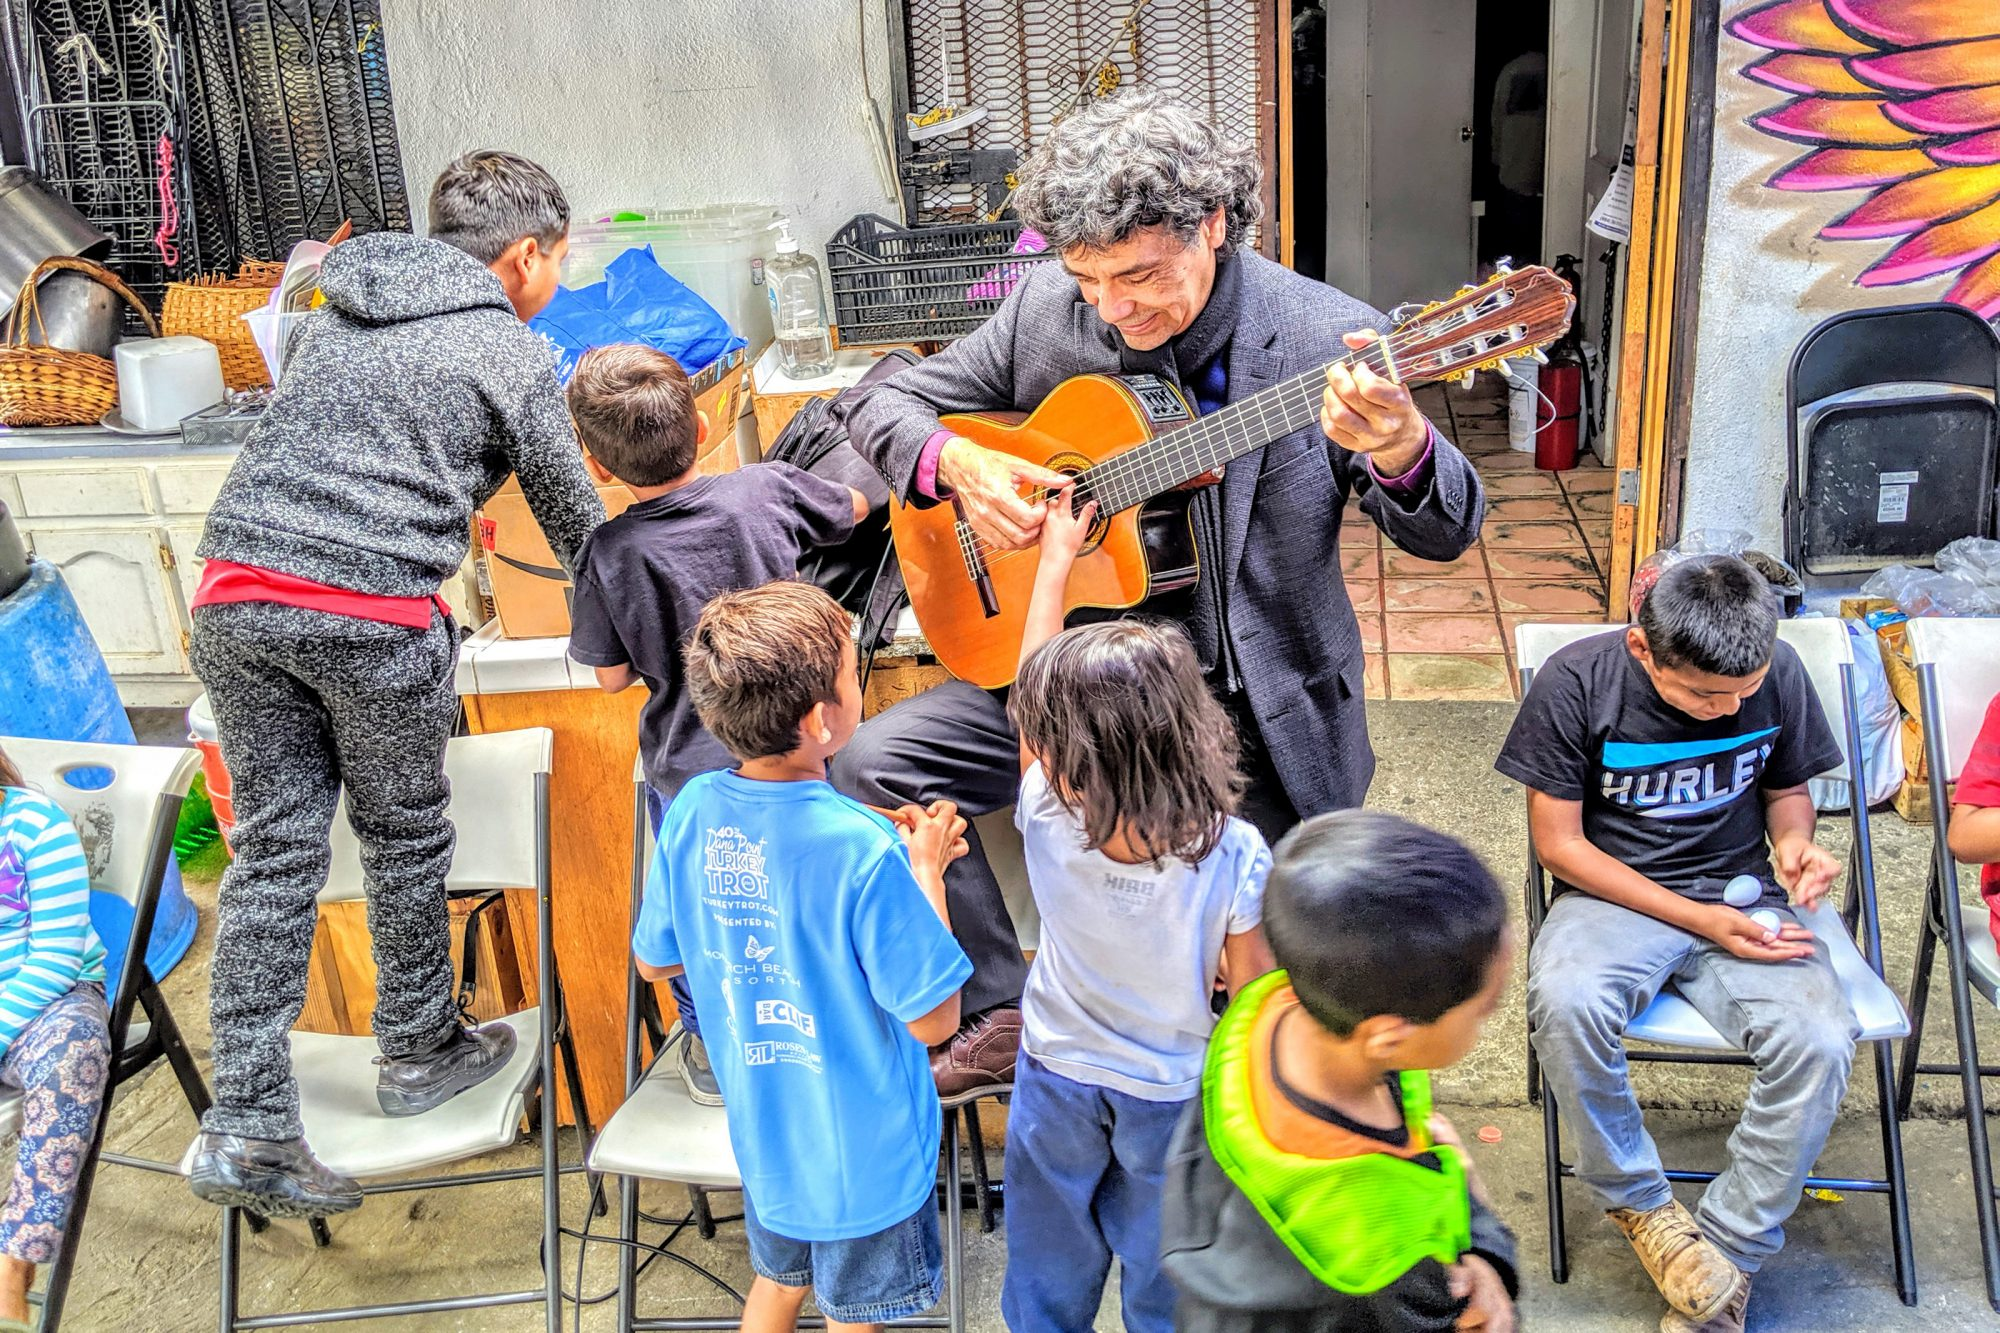 Man playing a guitar for children at the border